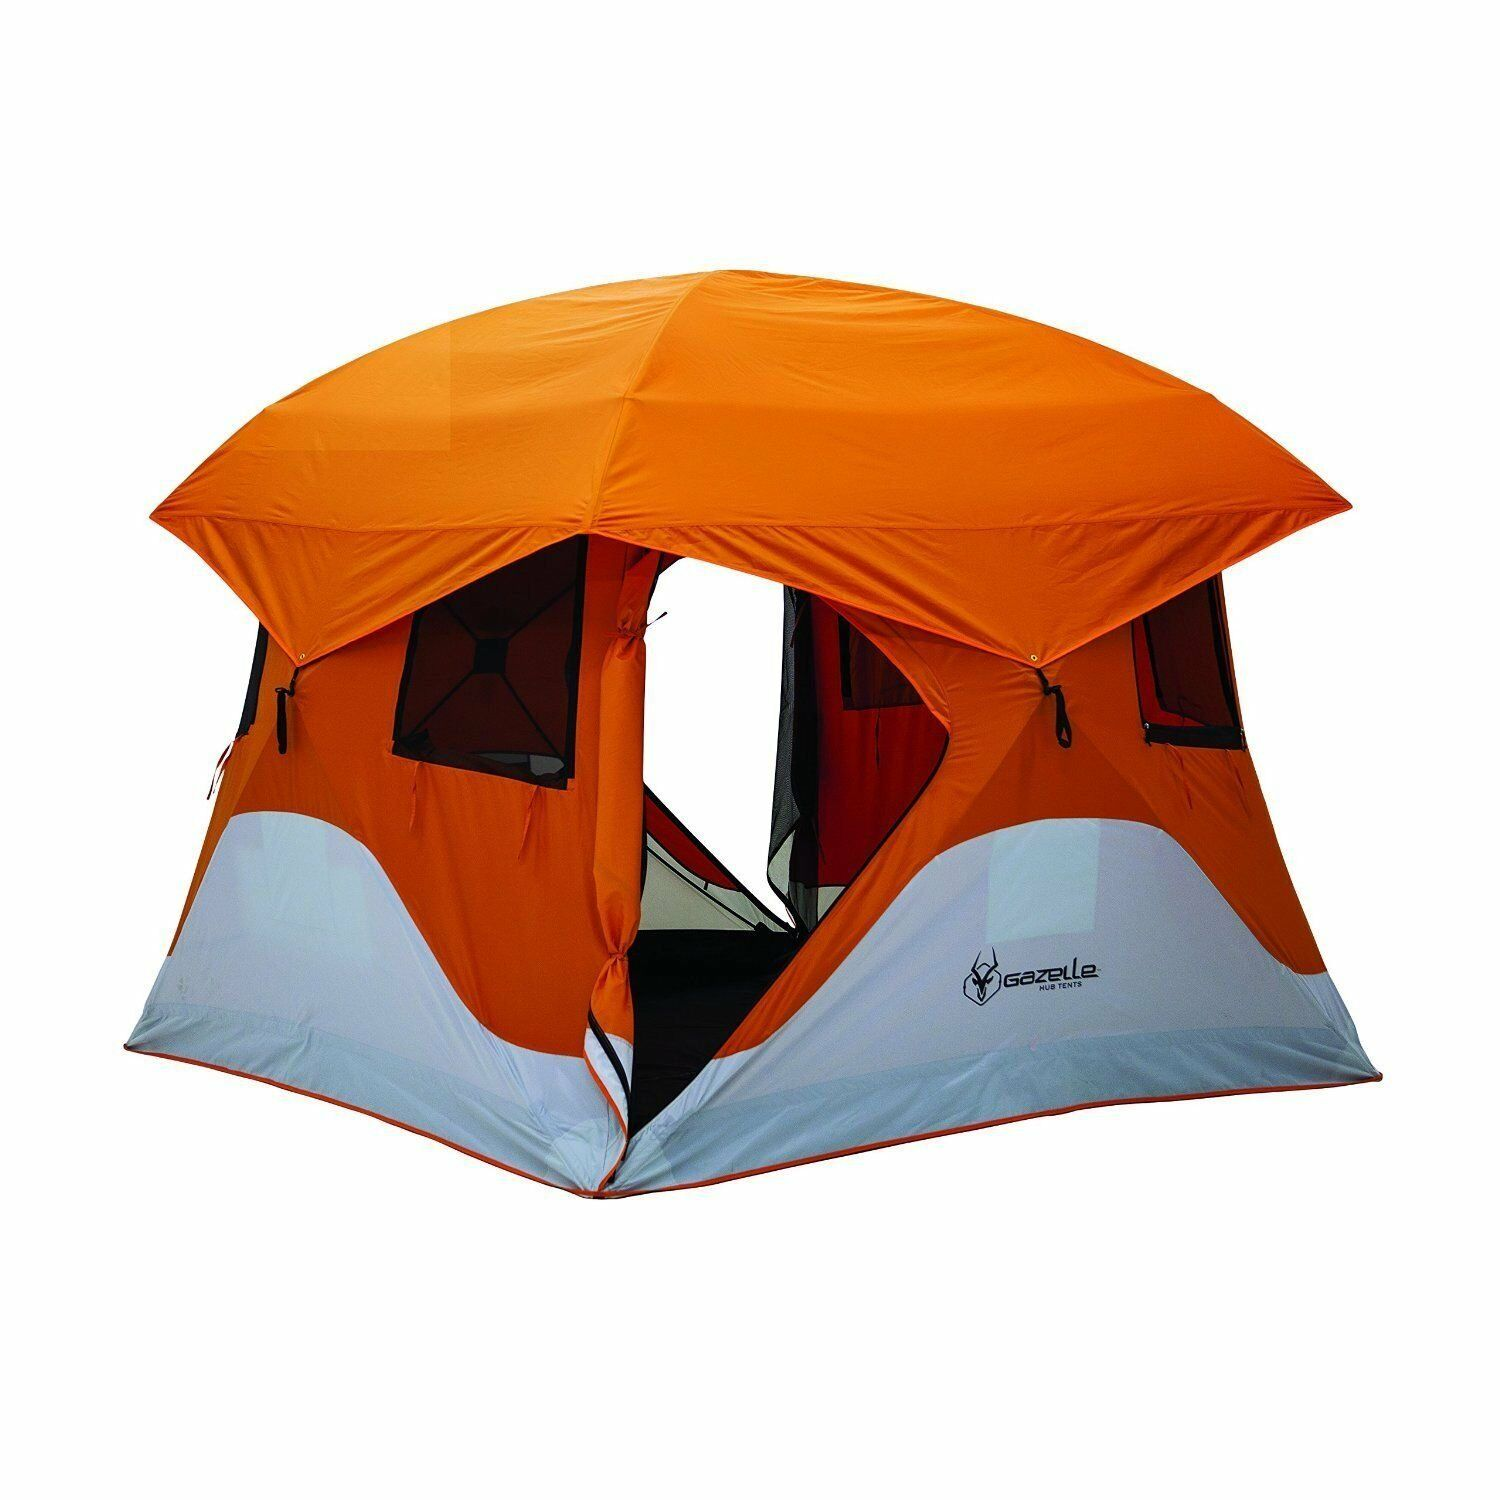 22272 NEW Outdoor Adventure Feature Loaded  Gazelle T4 Camping Campground Tent  welcome to buy